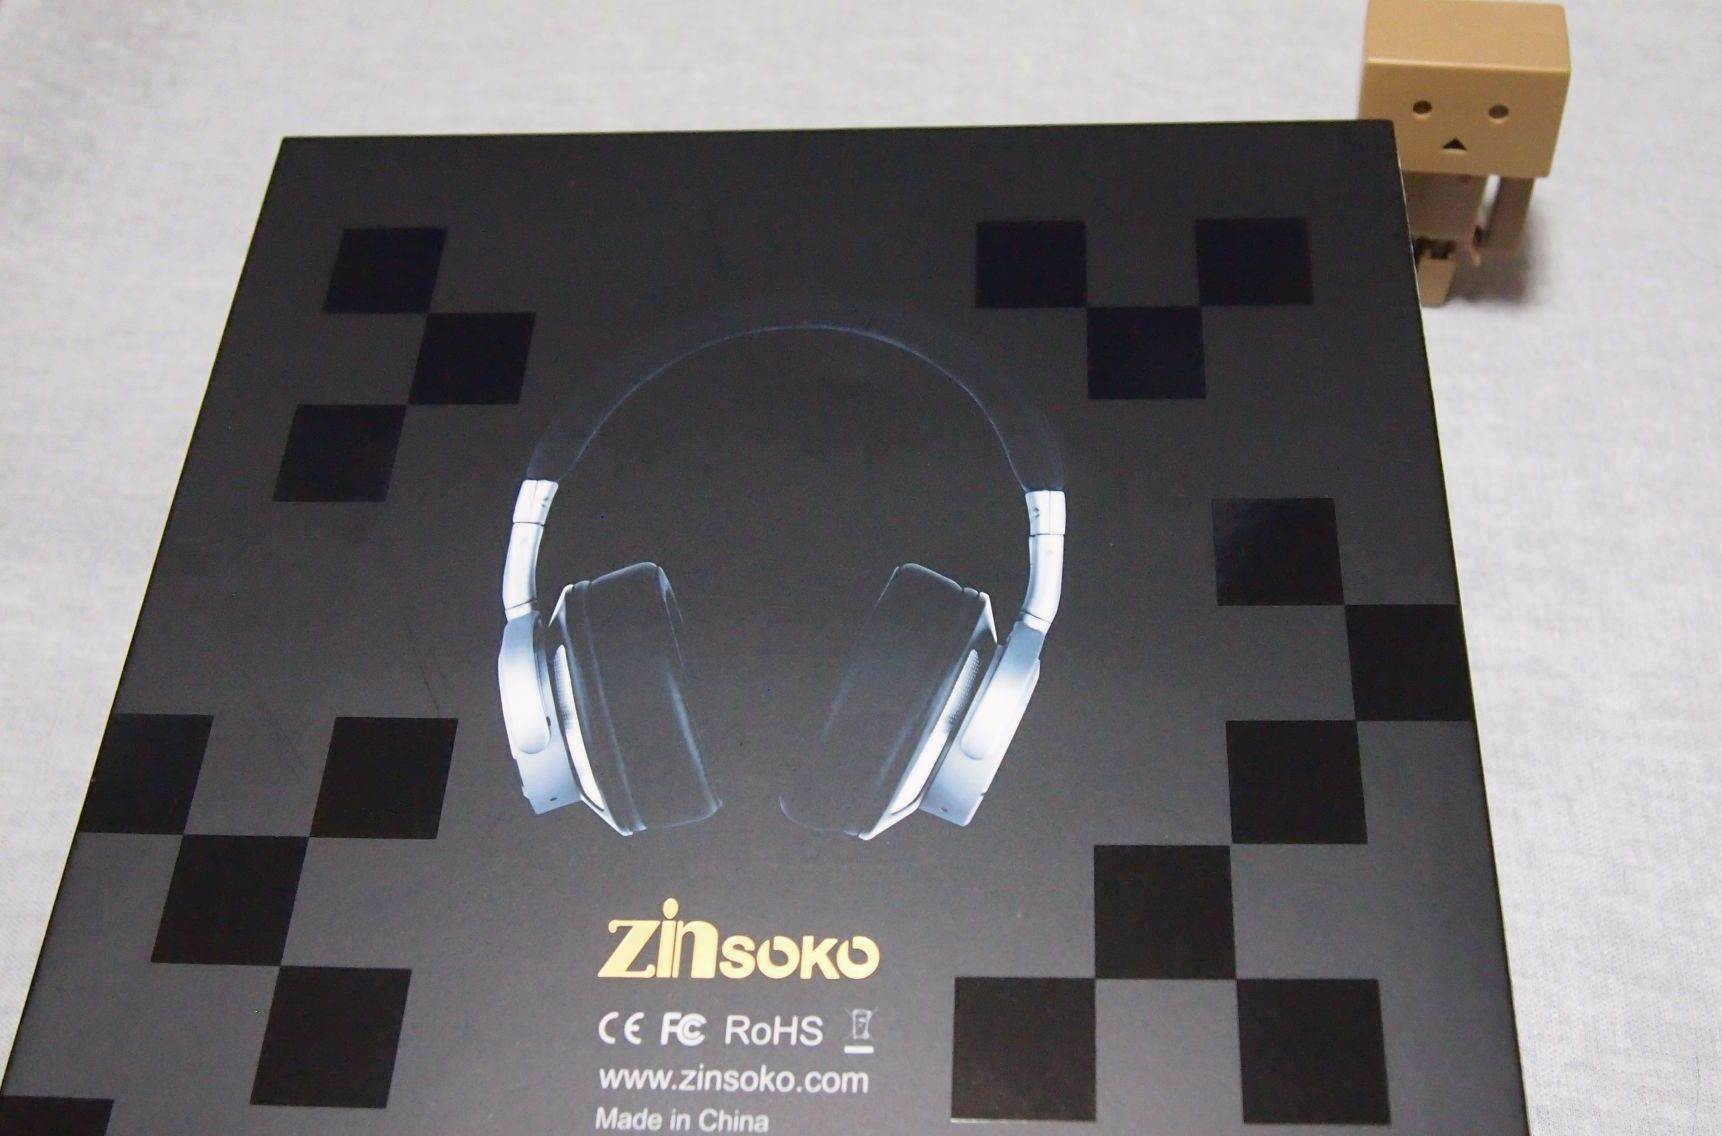 Zinsoko Z-H01 bluetoothヘッドホン